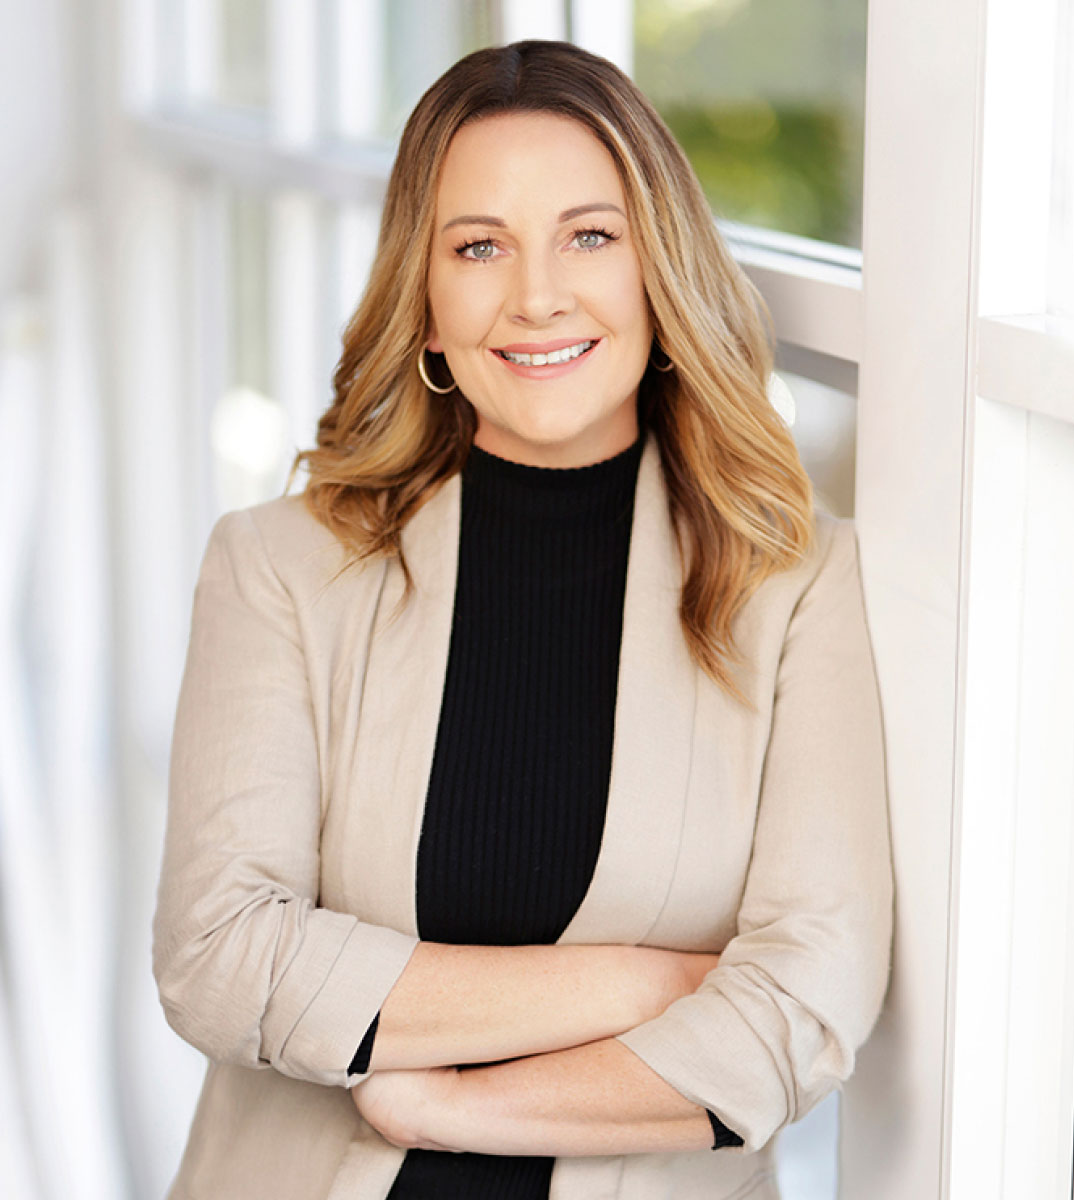 Hayley Maree Grant from HMG Home Loans